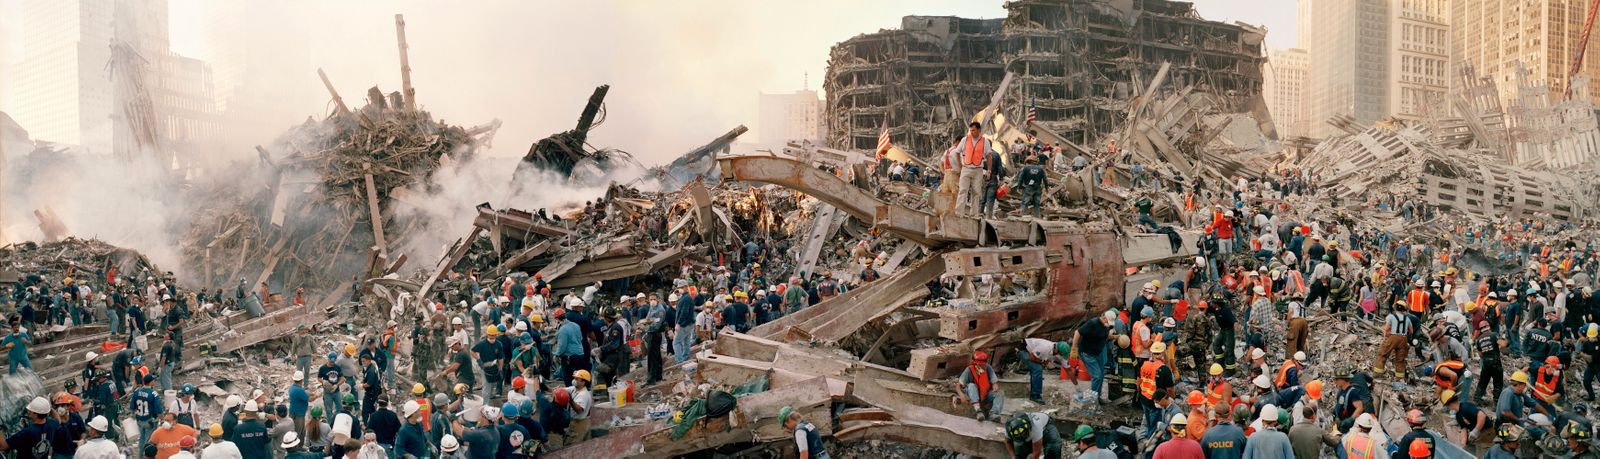 Ground Zero, Rescue Operation after Sept 11 attack